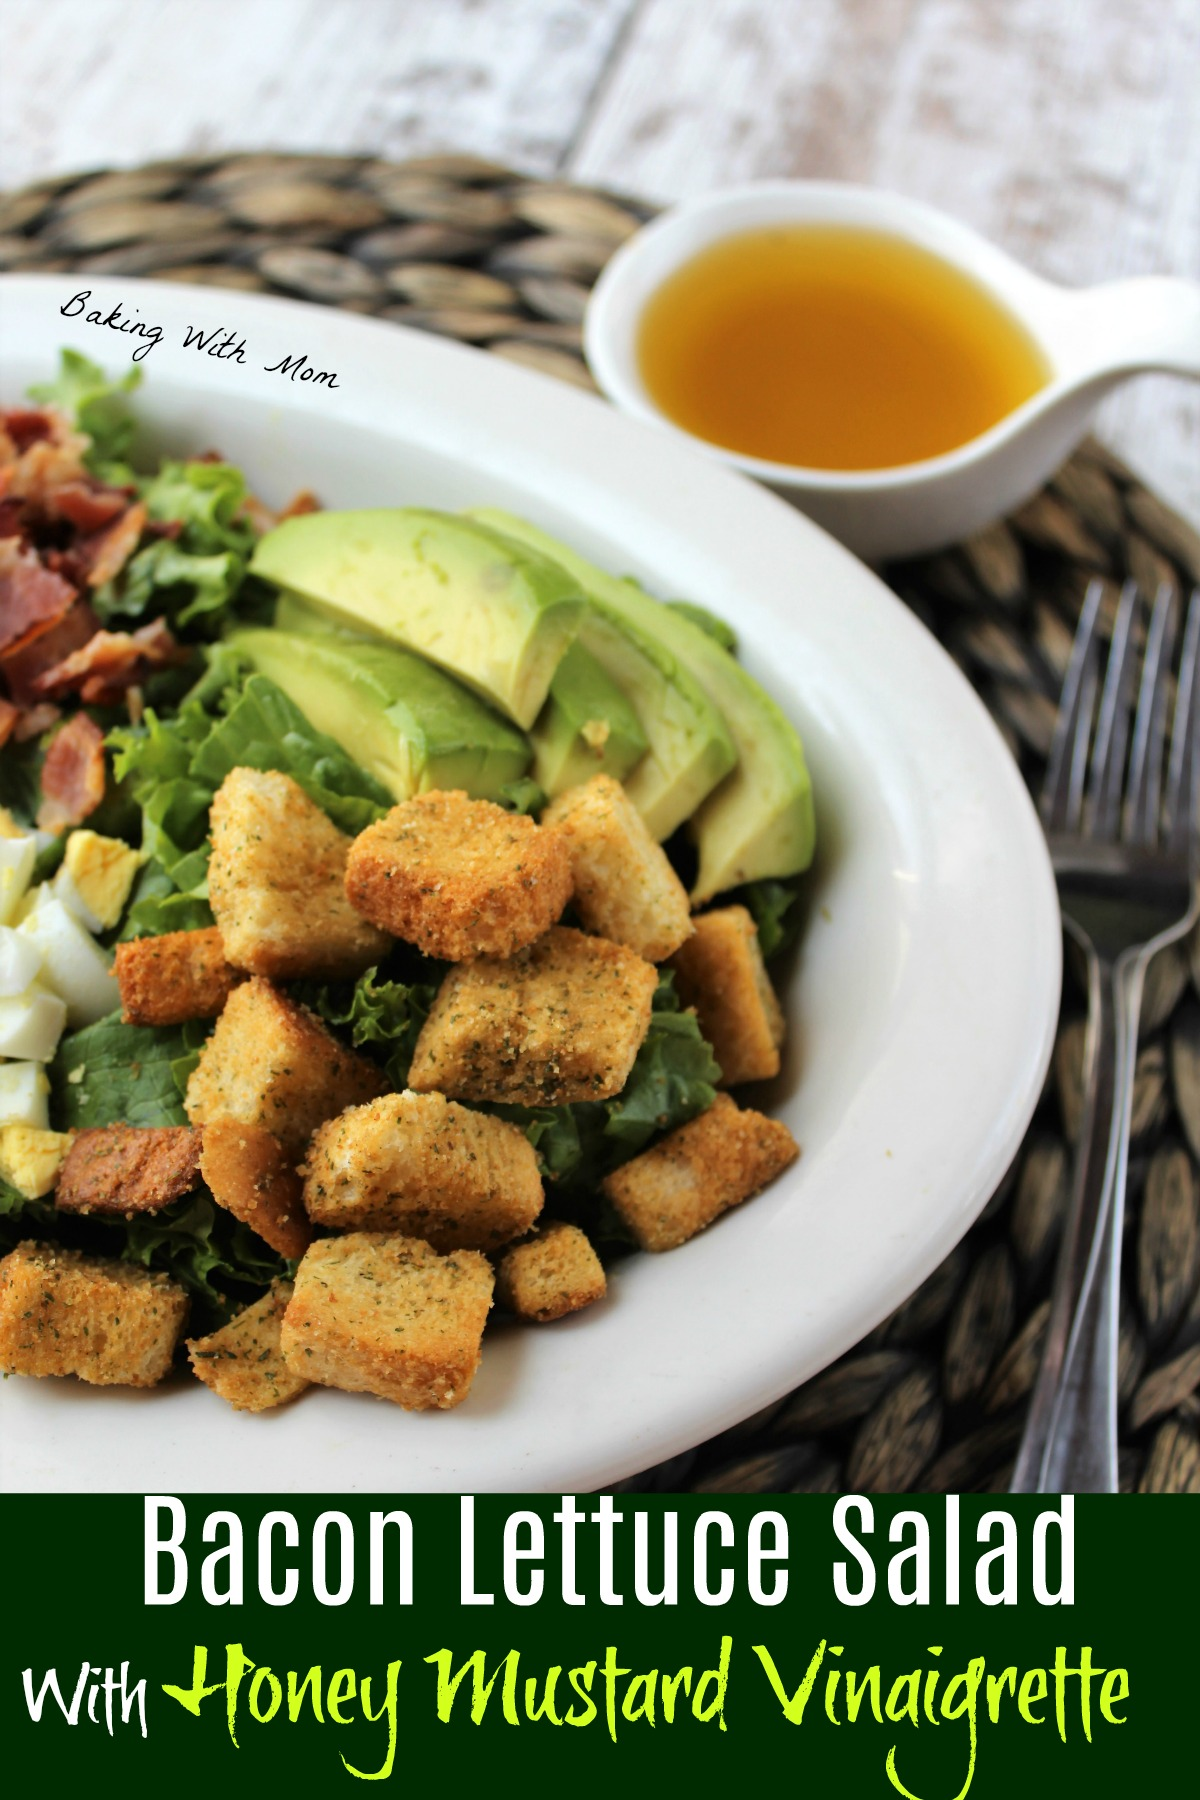 Lettuce salad in a white bowl with Honey Mustard Dressing besides. Lettuce topped with avocado, bacon, croutons, eggs